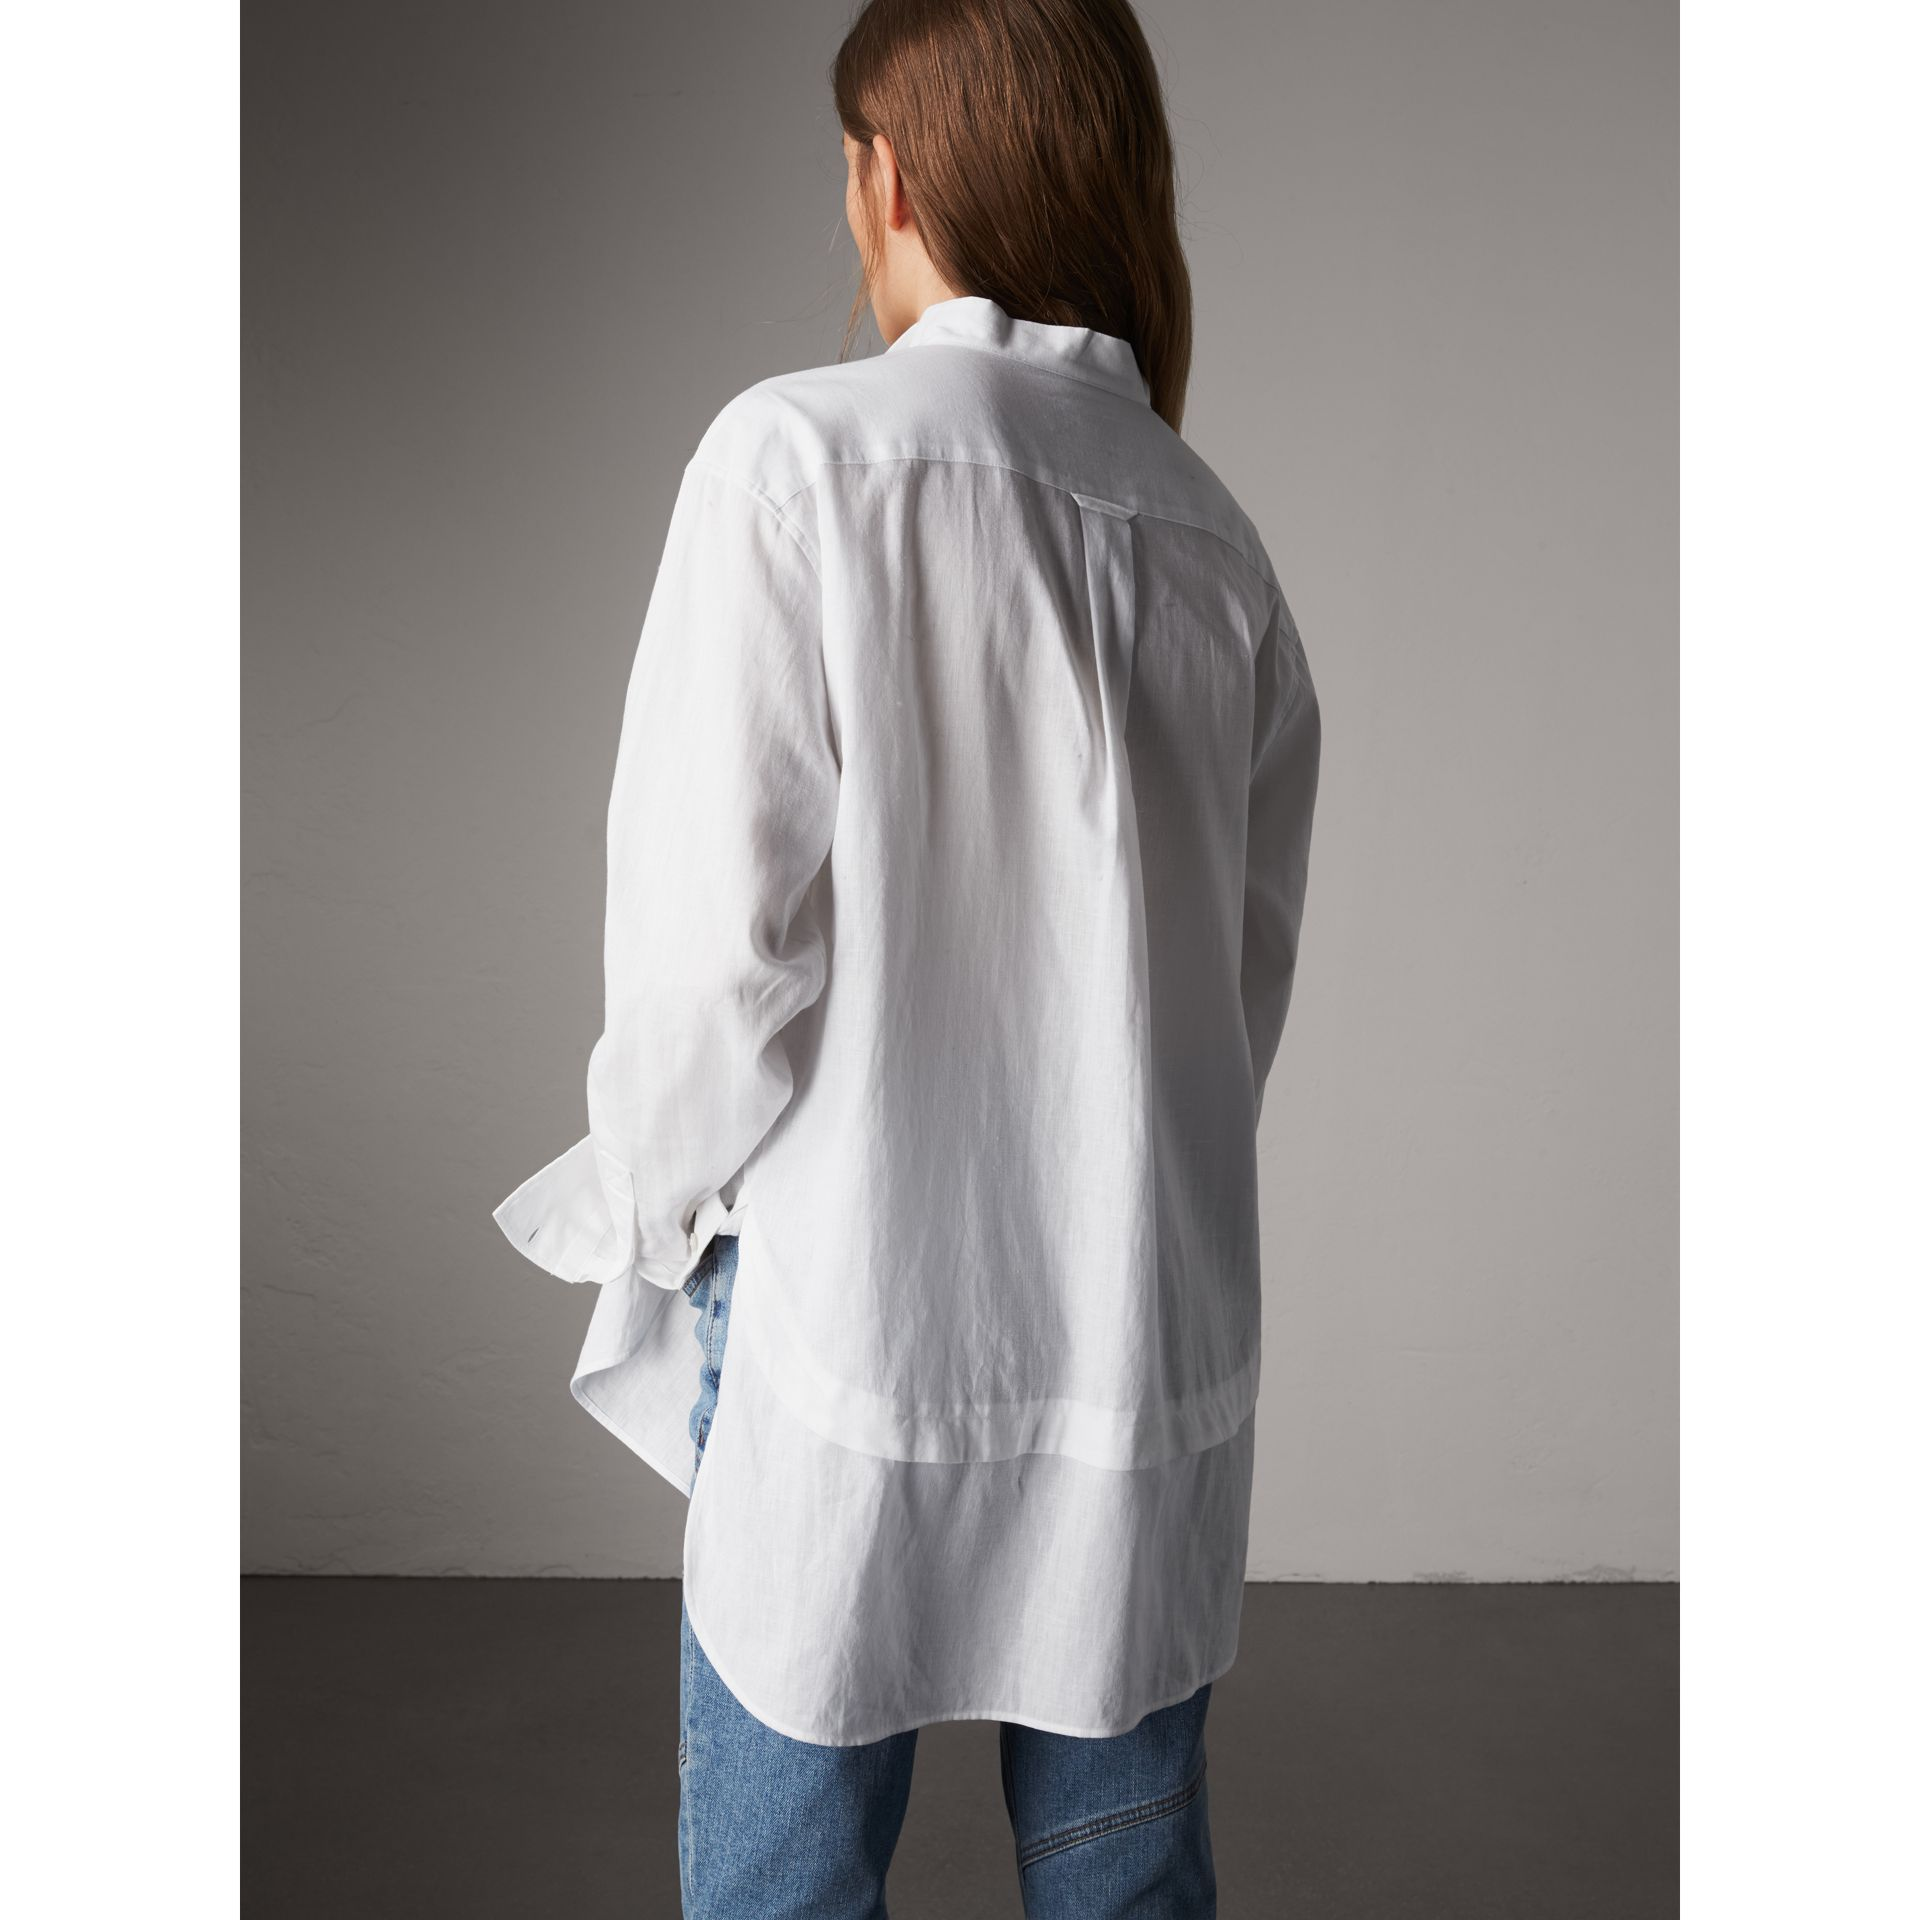 Pintuck Bib Wing Collar Longline Linen Cotton Shirt in White - Women | Burberry Australia - gallery image 3